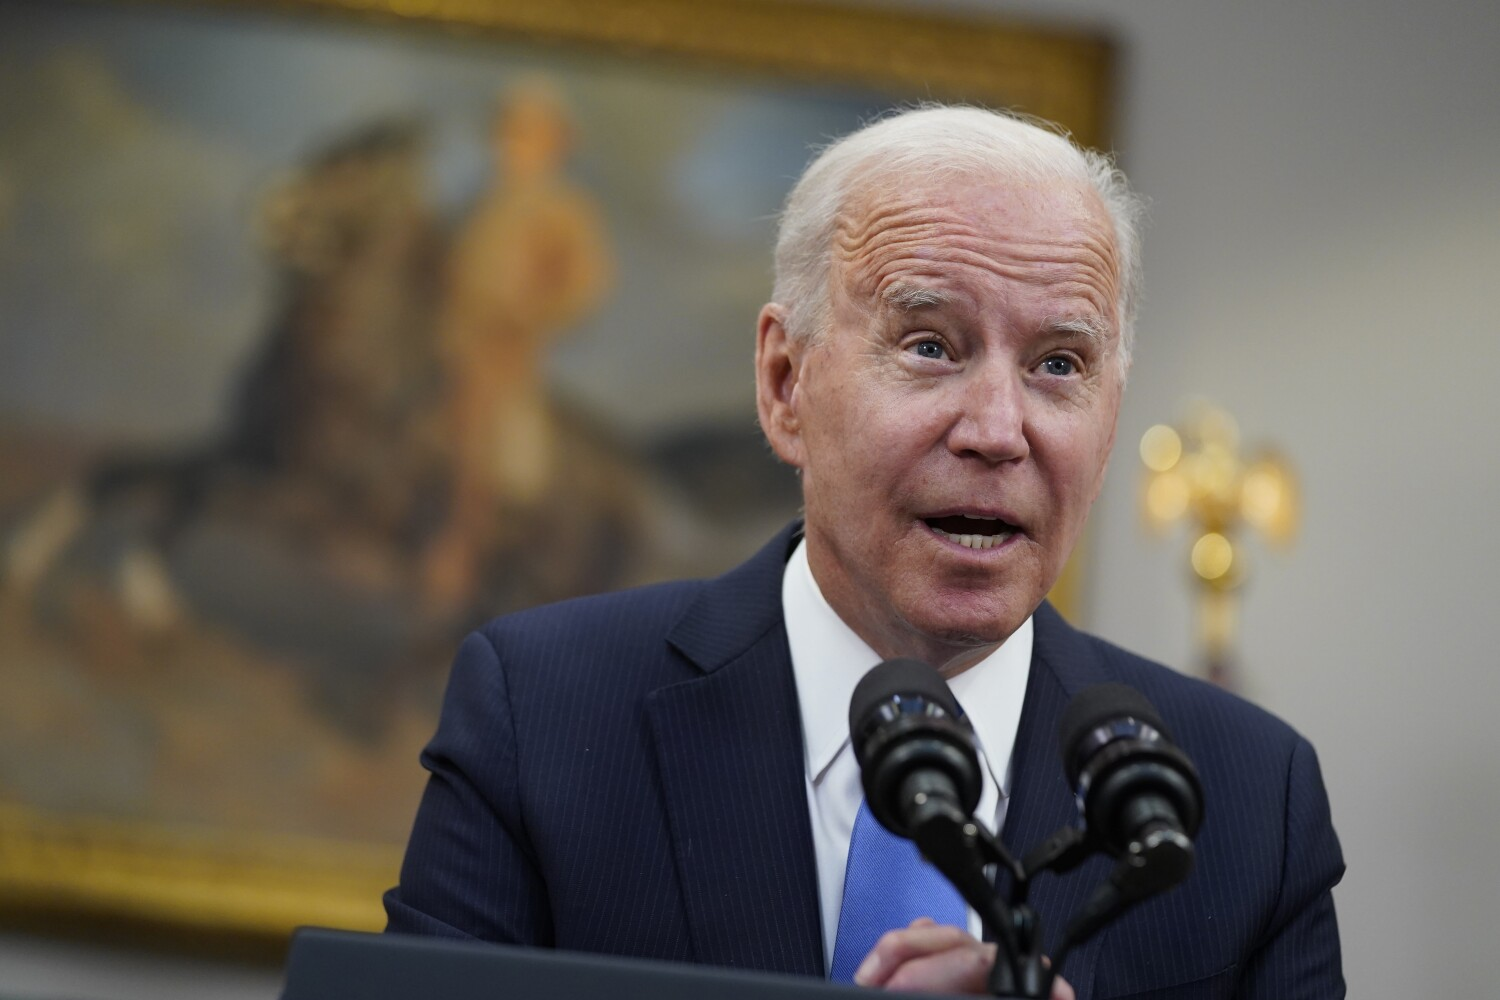 With Biden's first budget, annual federal spending would top $6 trillion